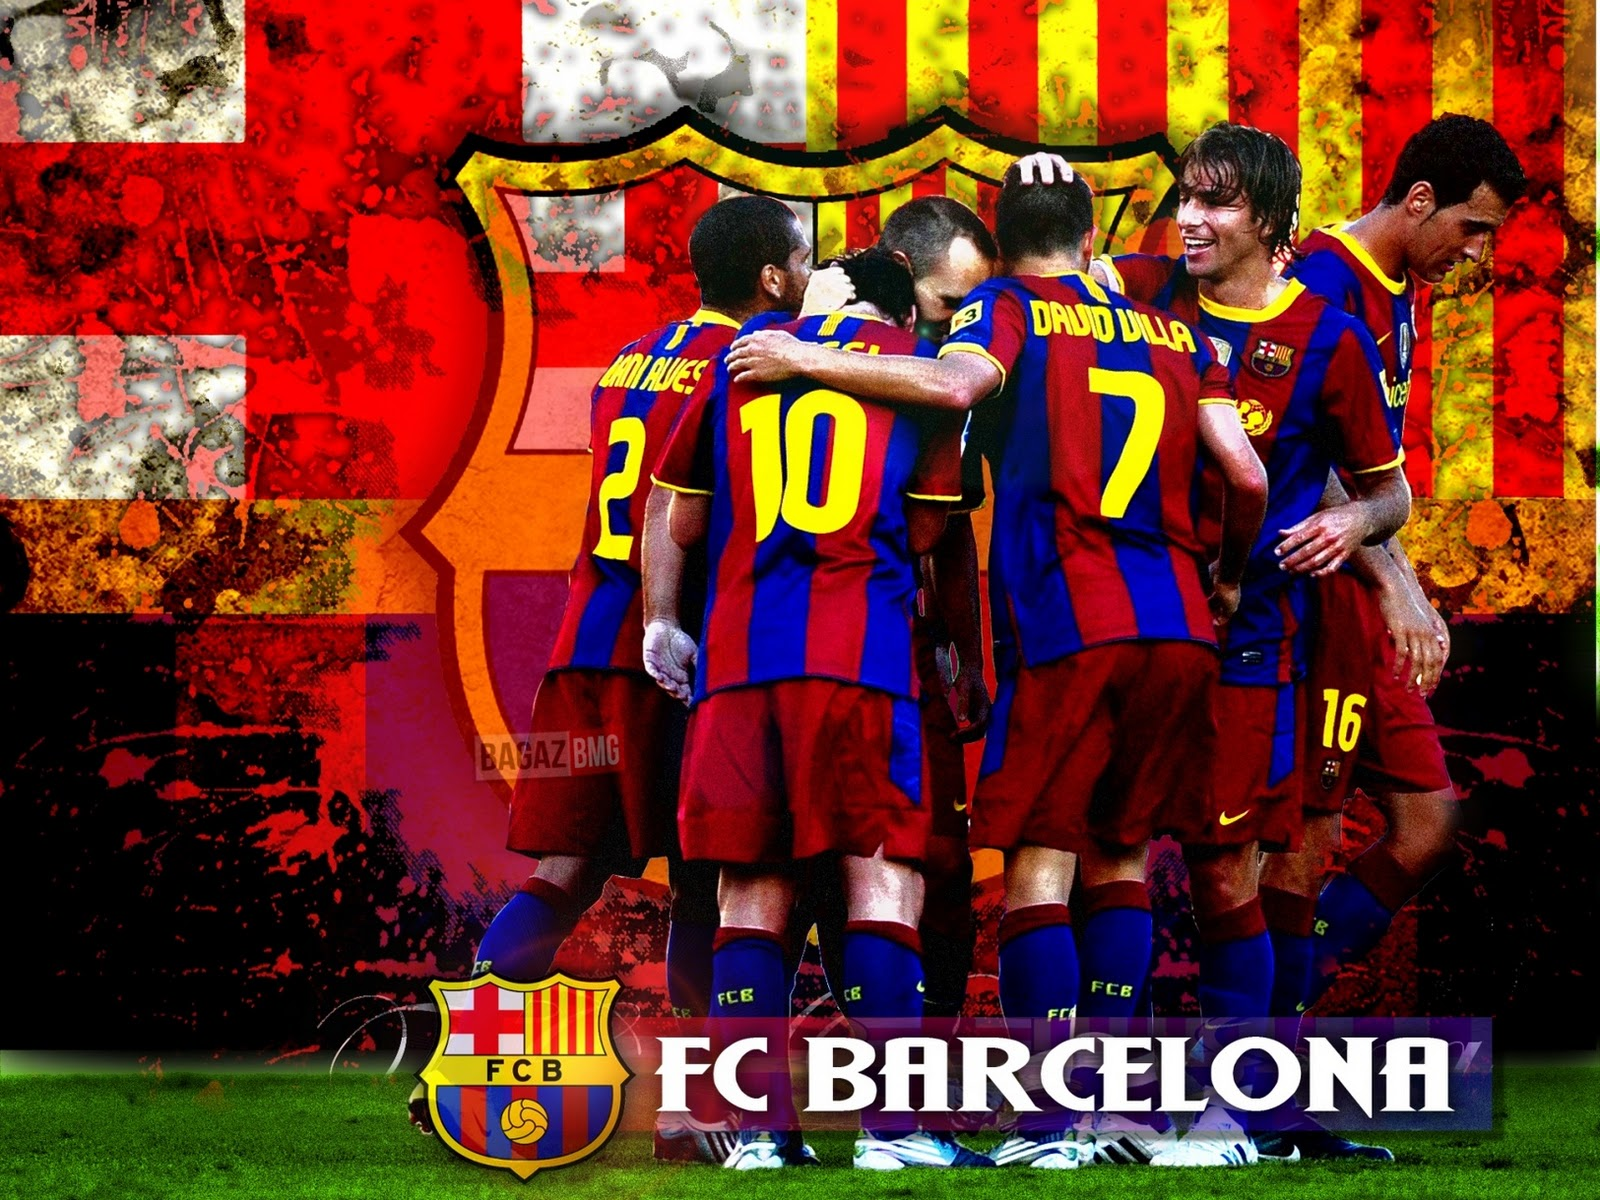 Fondos De Pantalla Del Fútbol Club Barcelona Wallpapers: Wallpapers F.C. Barcelona